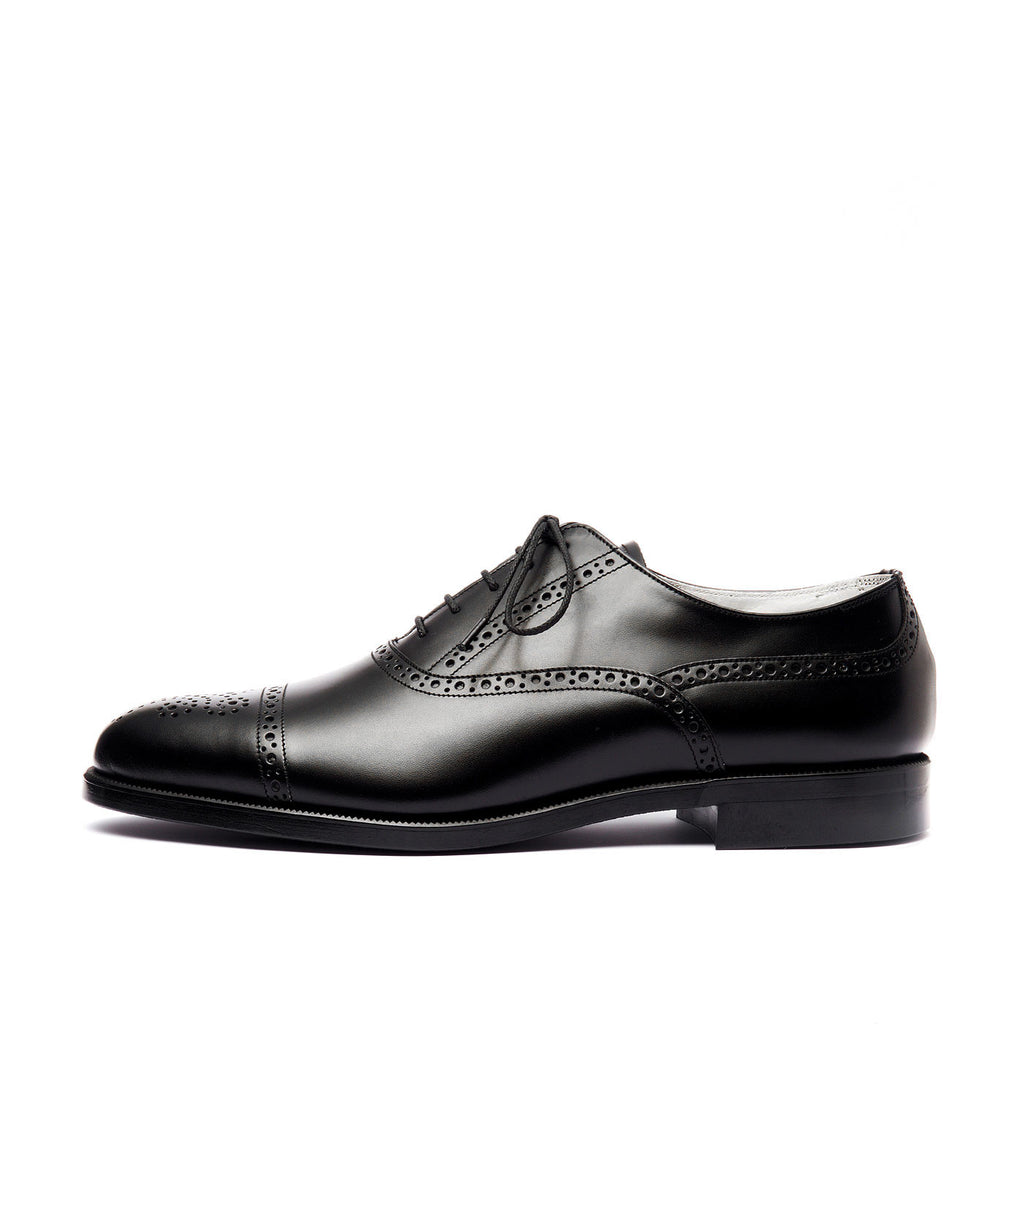 FOOTSTOCK フットストック SEMI BROGUE SHOES BLACK 公式通販 session